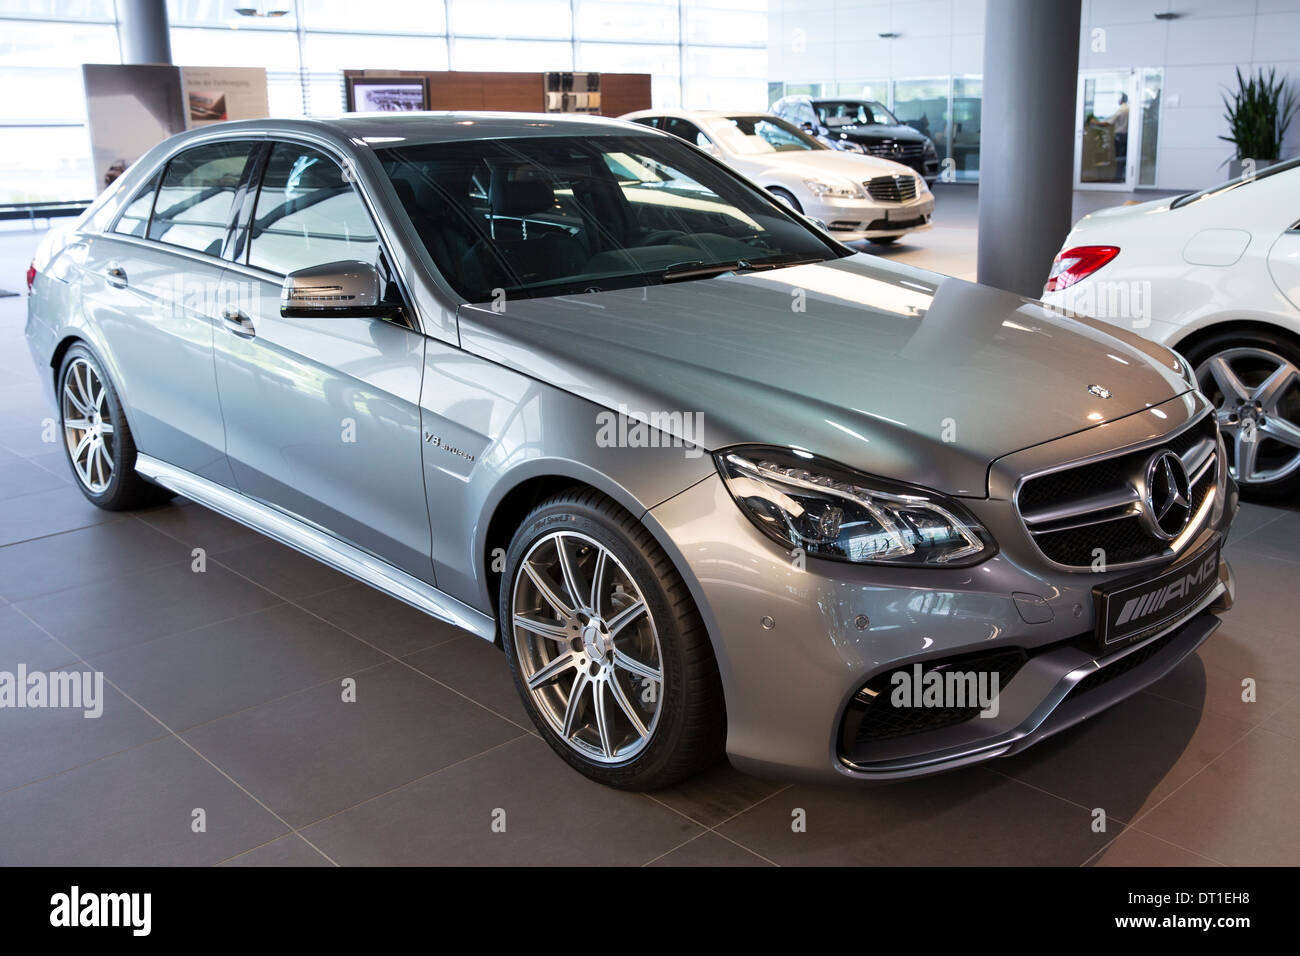 mercedes amg e63 amg v8 biturbo saloon car in mercedes amg. Black Bedroom Furniture Sets. Home Design Ideas